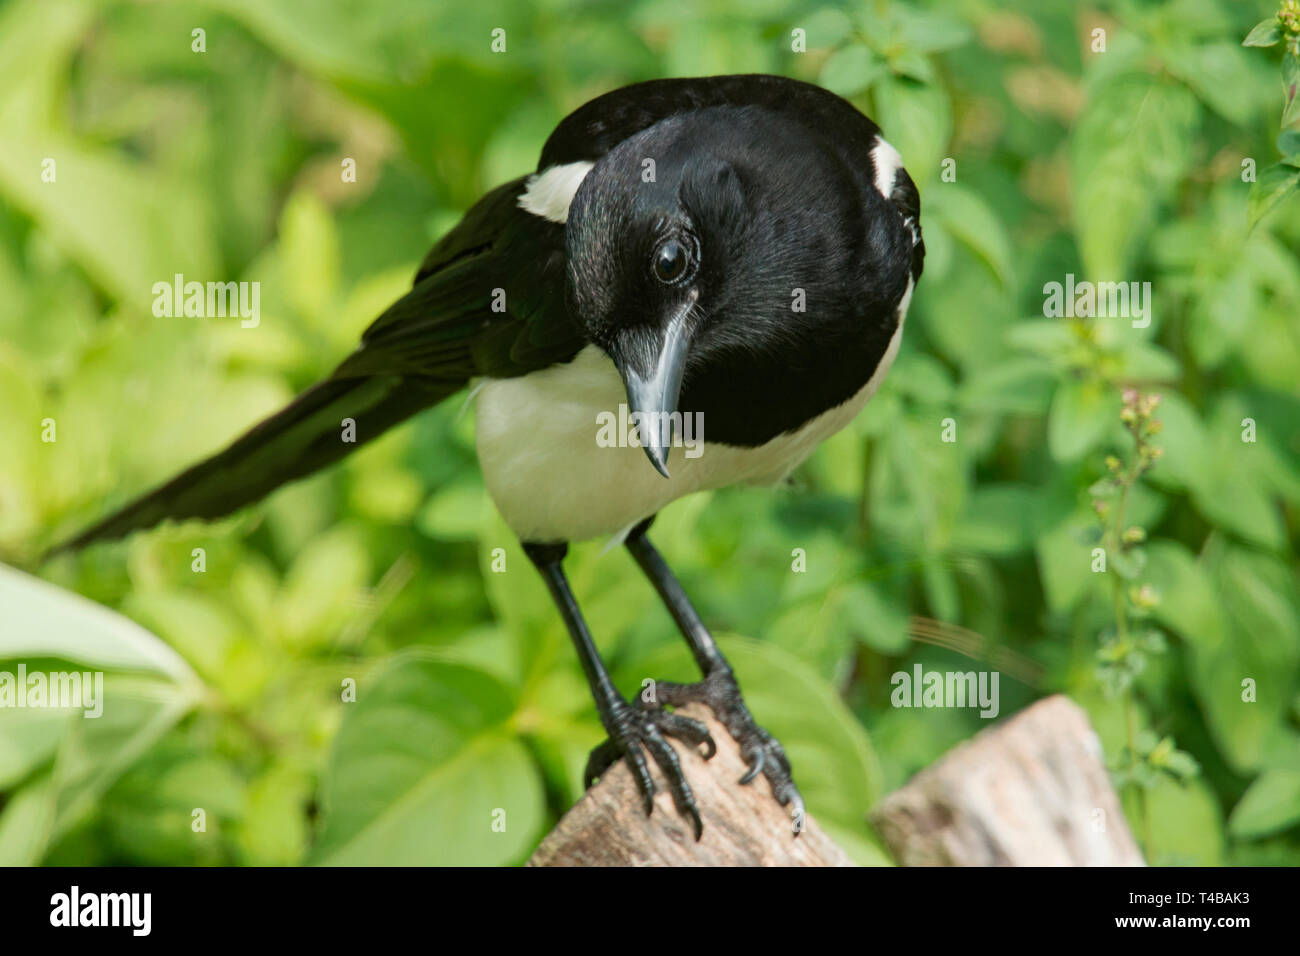 eurasian magpie, (Pica pica) - Stock Image